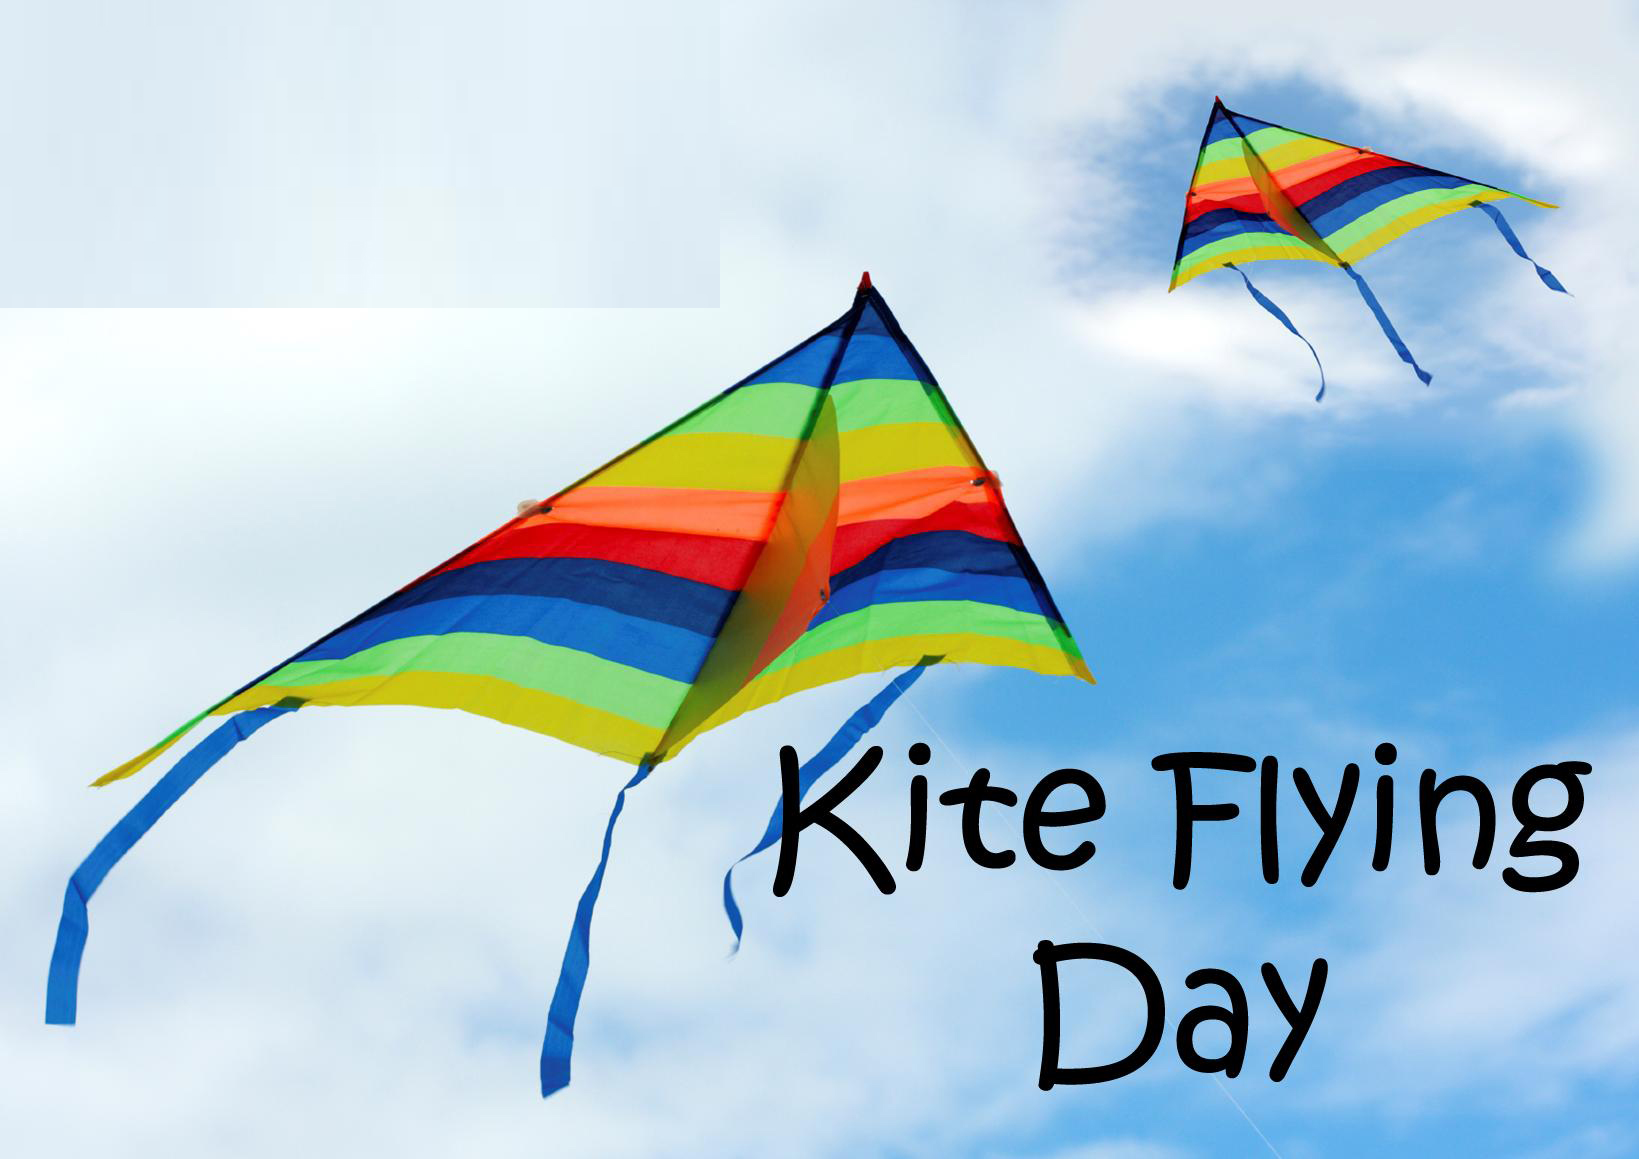 Kite Day 2018 Image for Whatsapp